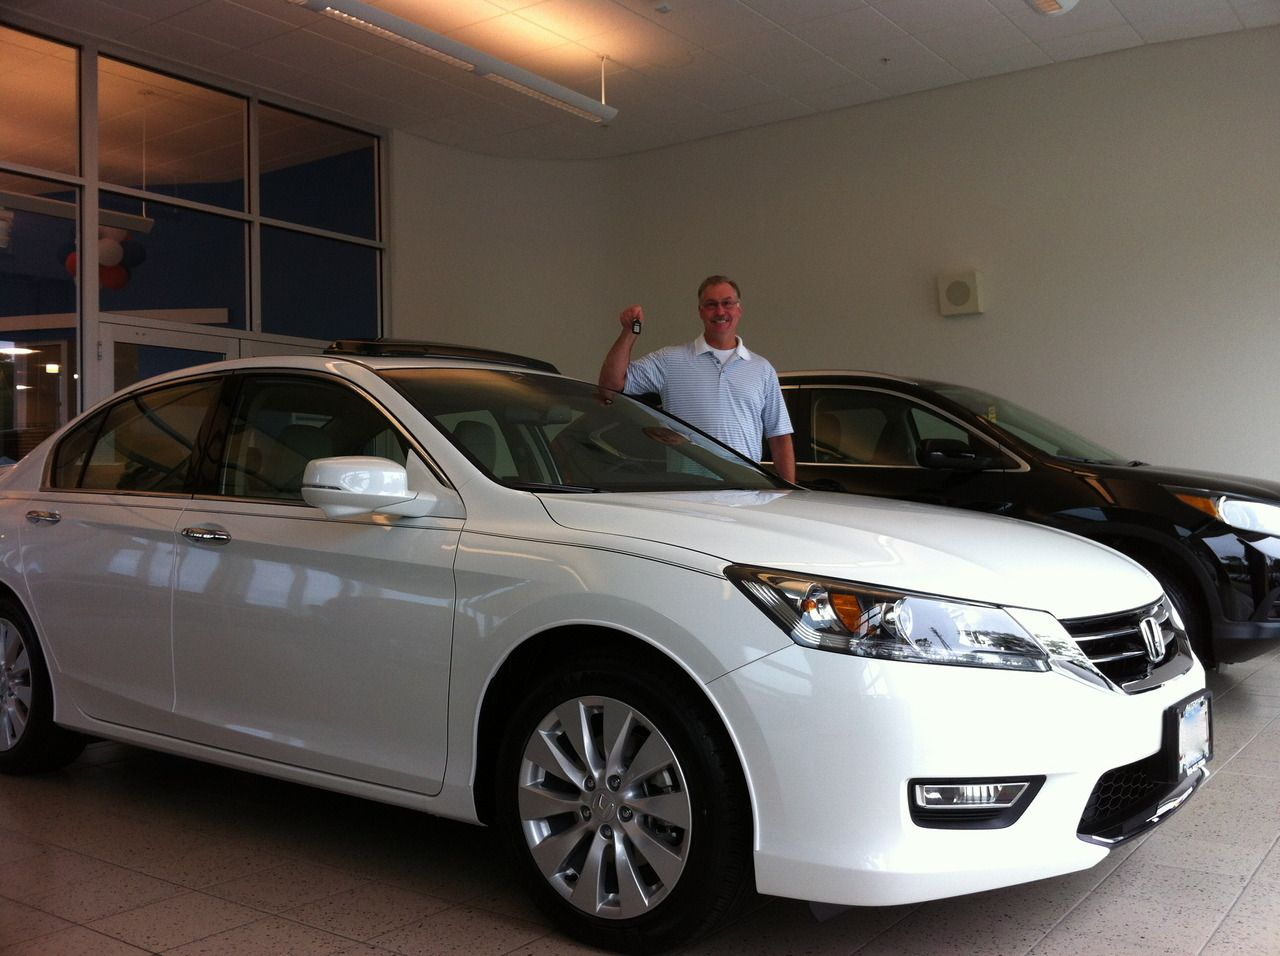 2013 Honda Accord And Proud New Owner Jeff F.!